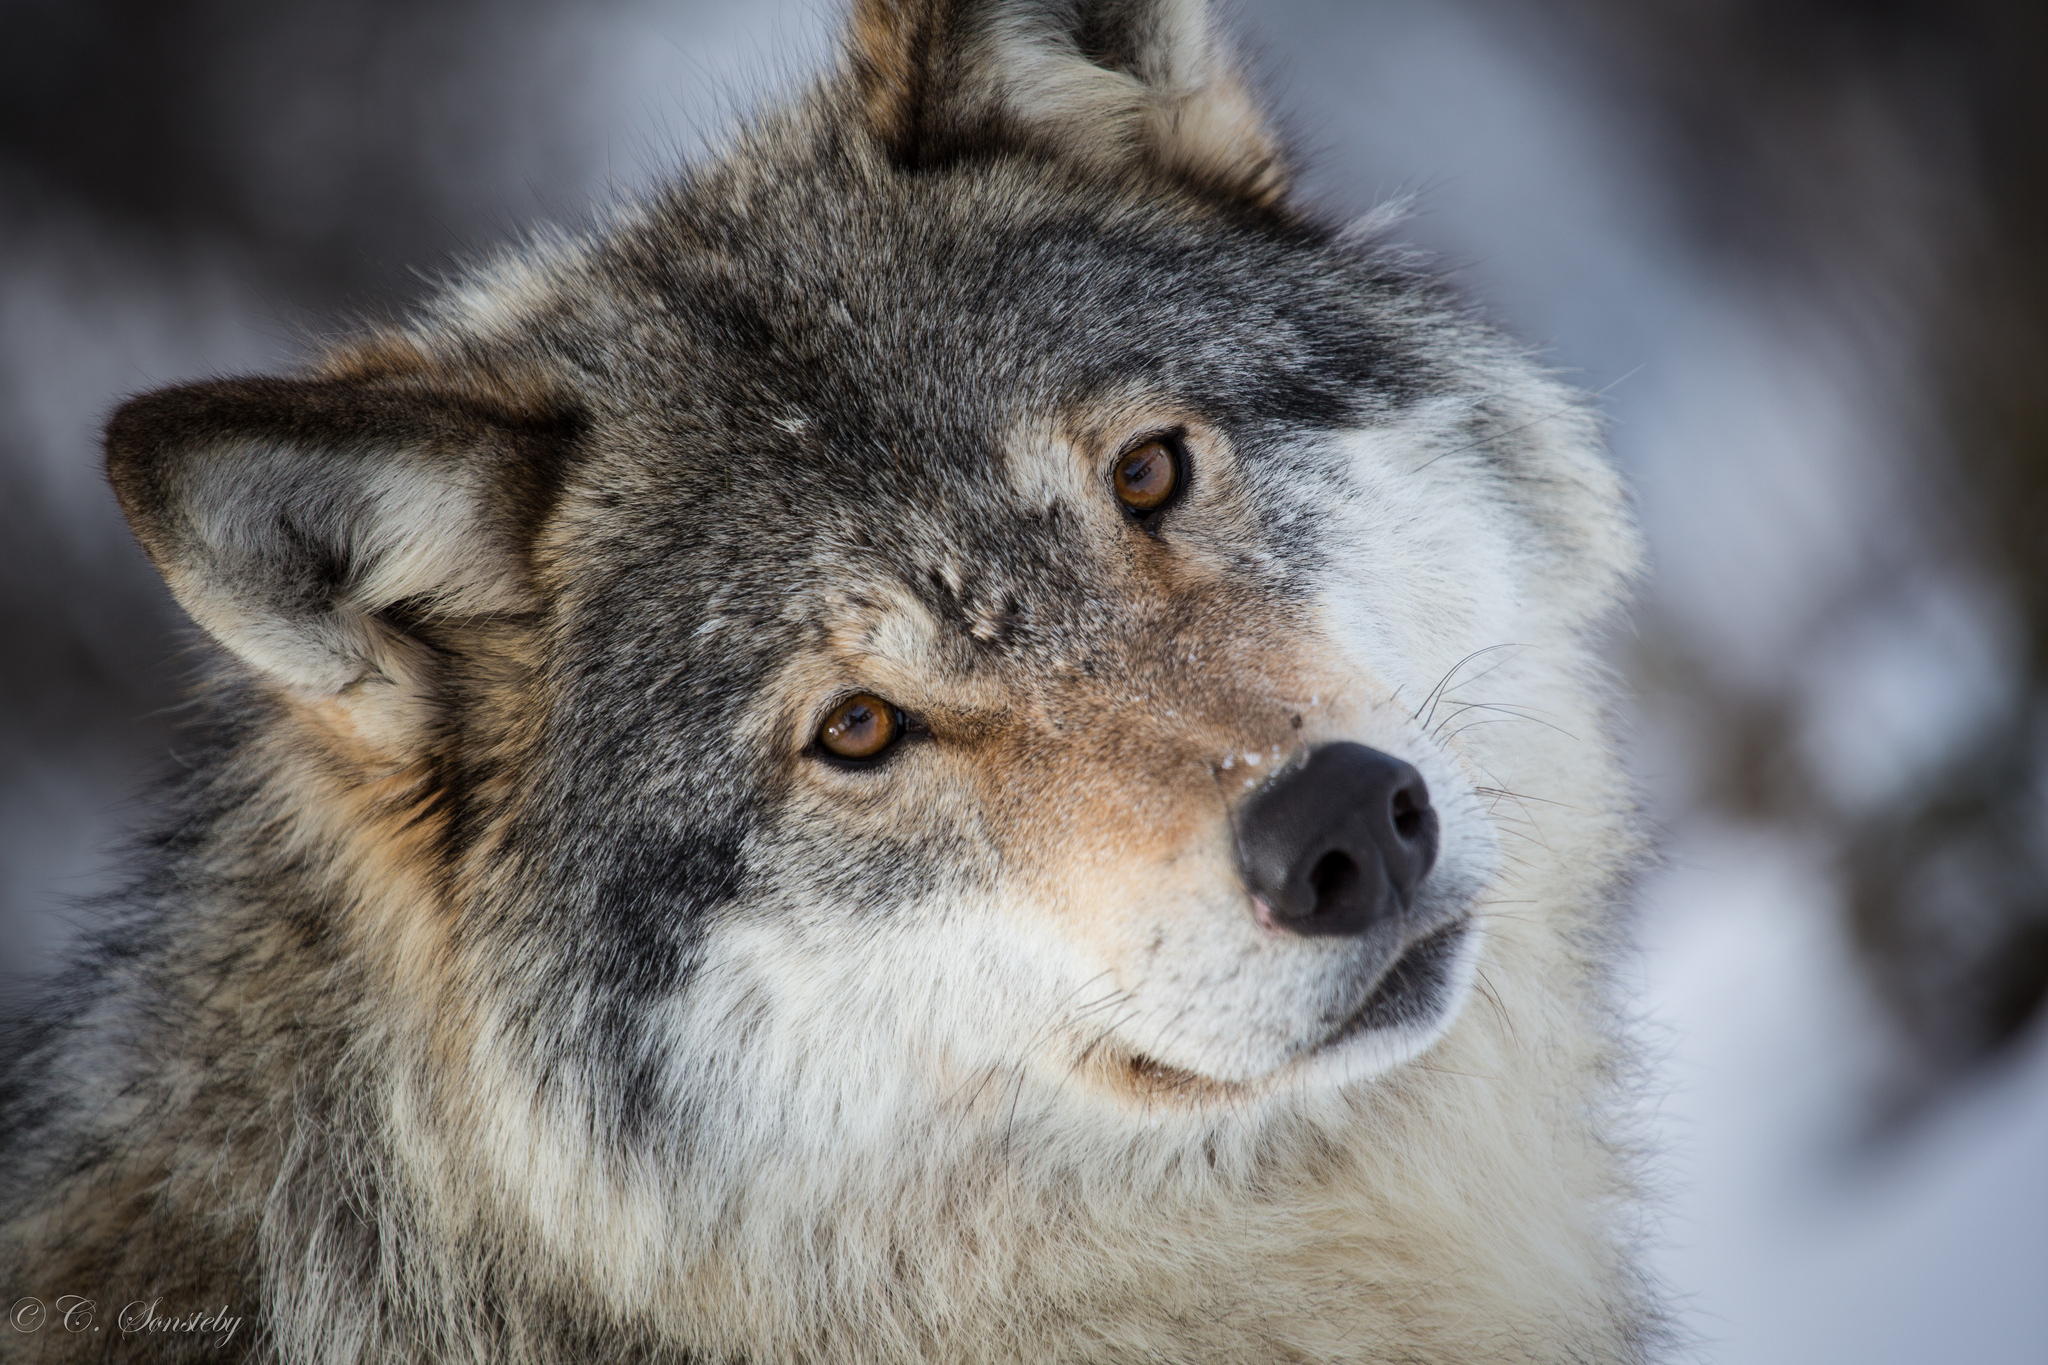 Wallpaper wolf gray wolf face eyes portrait wallpapers animals 2048x1365